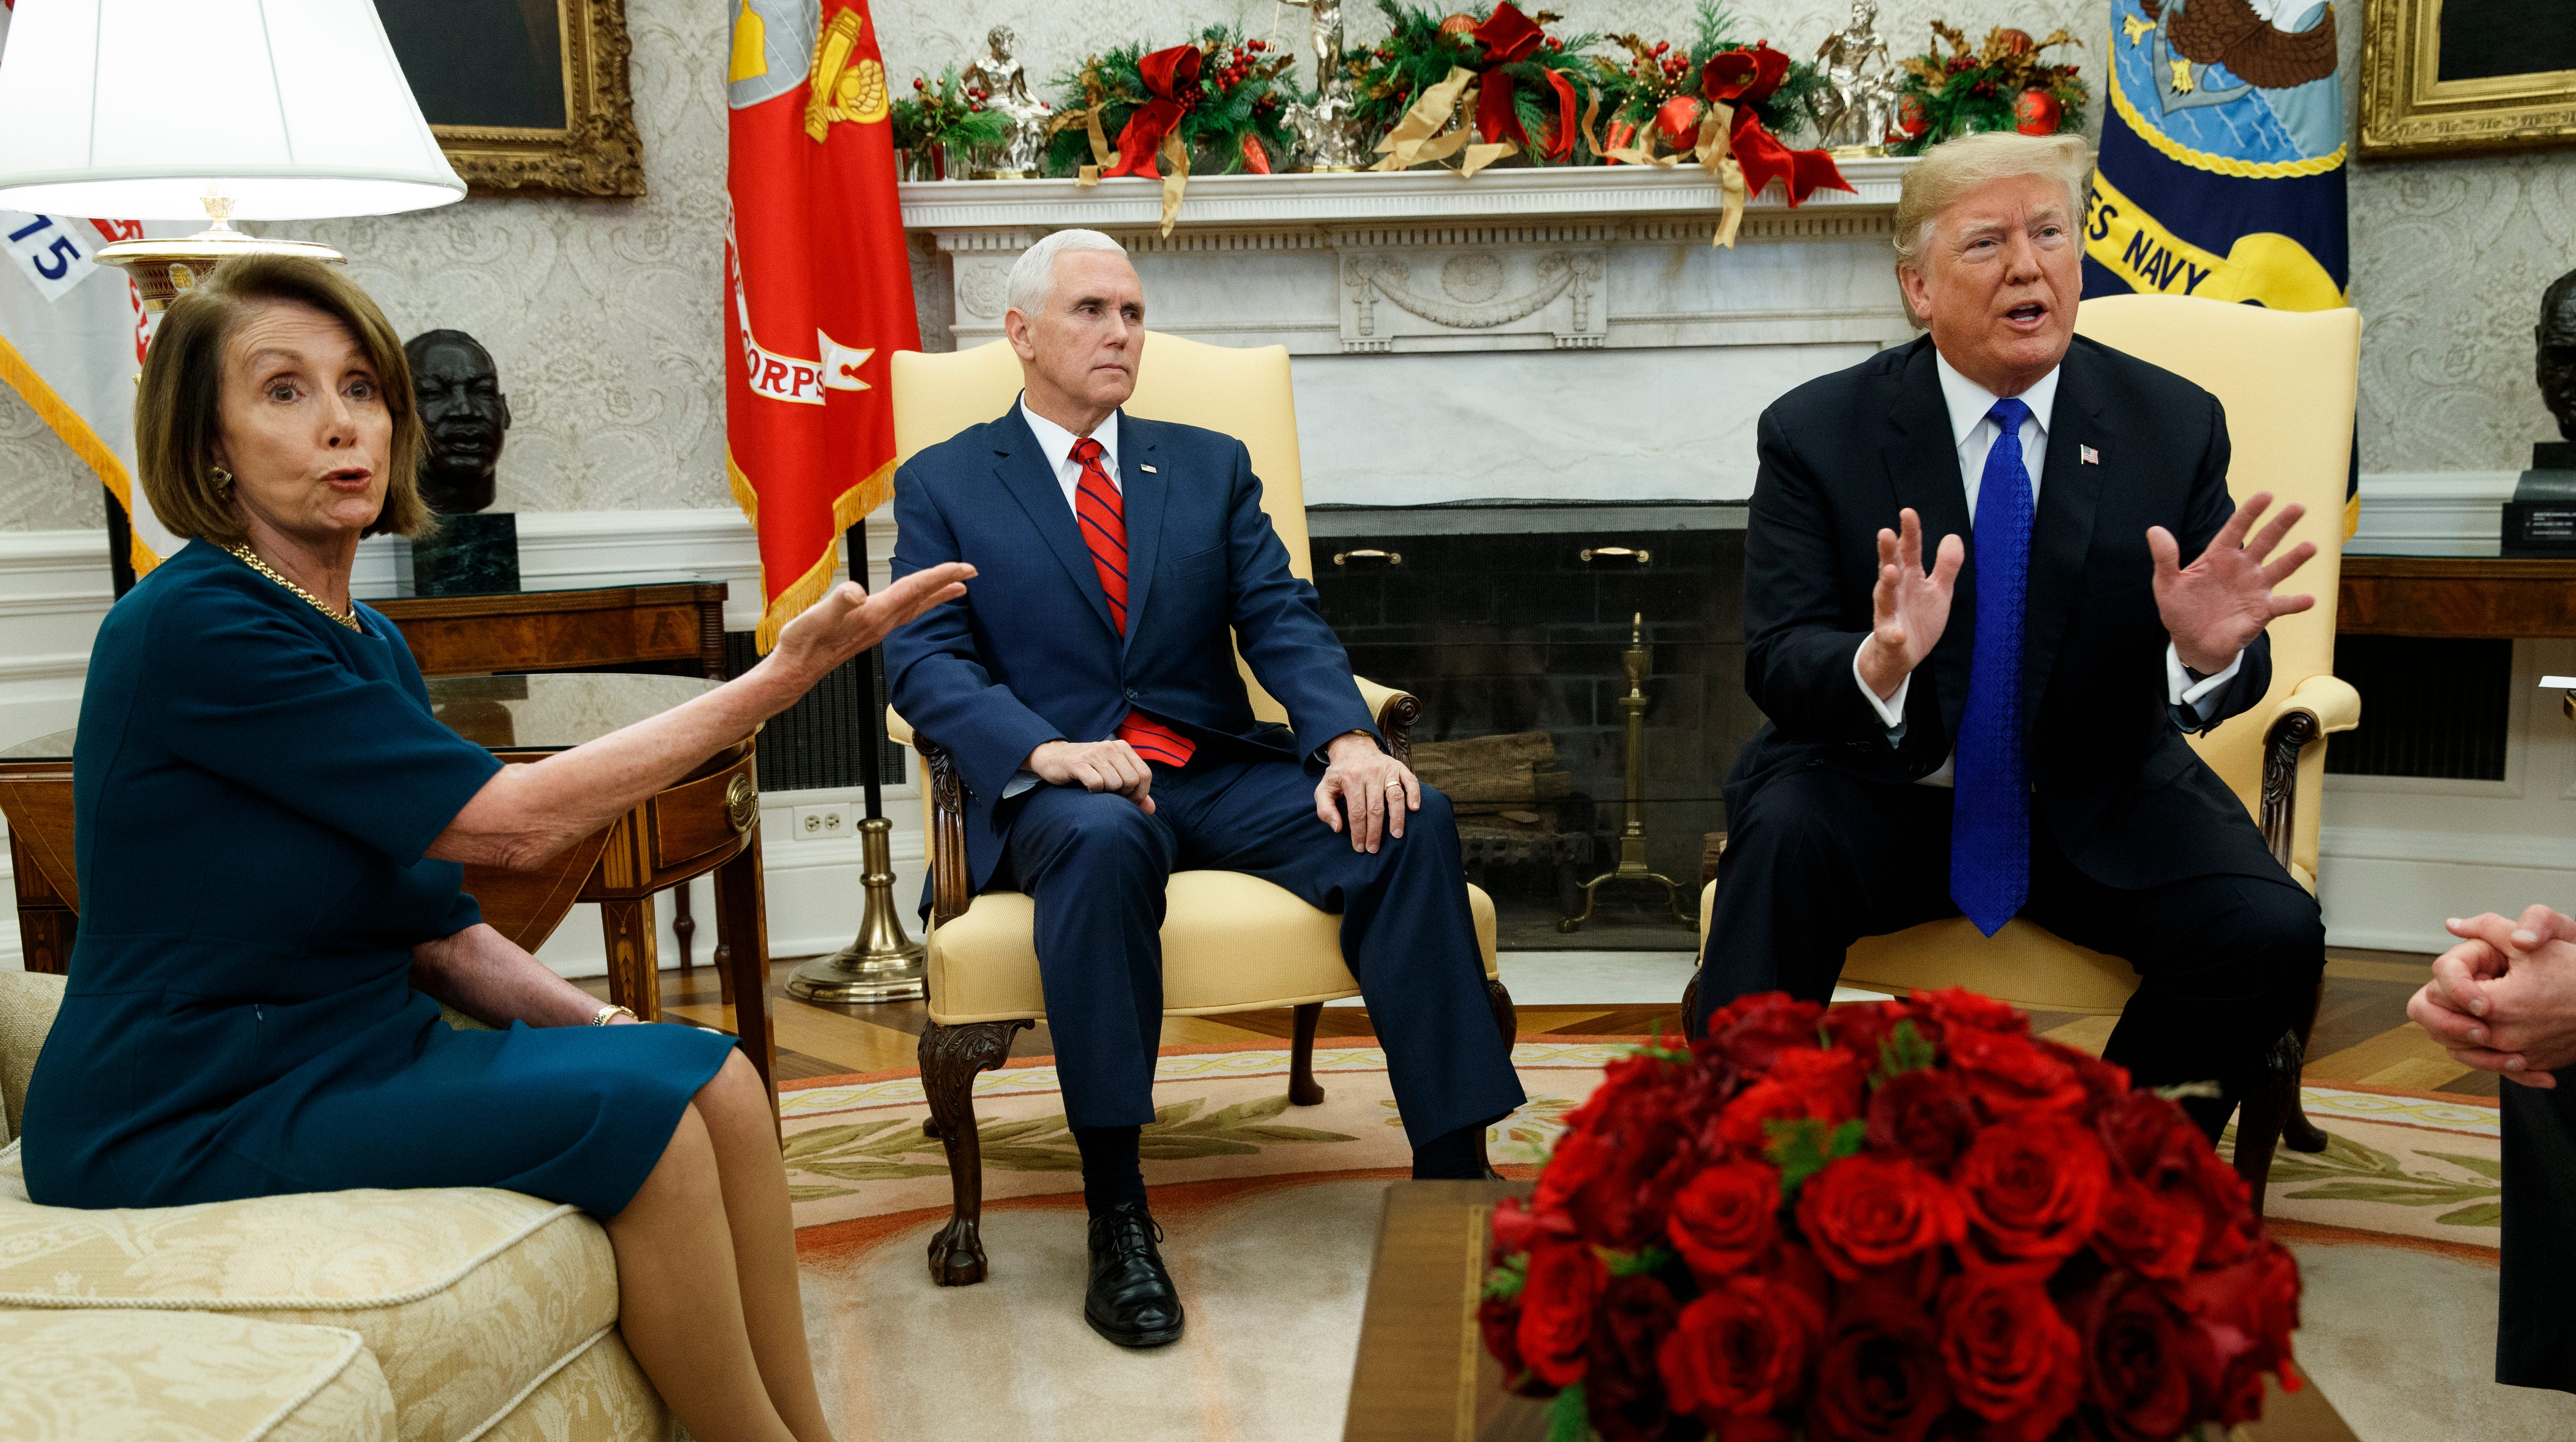 Vice President Mike Pence, center, looks on as House Minority Leader Rep. Nancy Pelosi, D-Calif., argues with President Donald Trump during a meeting in the Oval Office of the White House Dec. 11, 2018, in Washington.